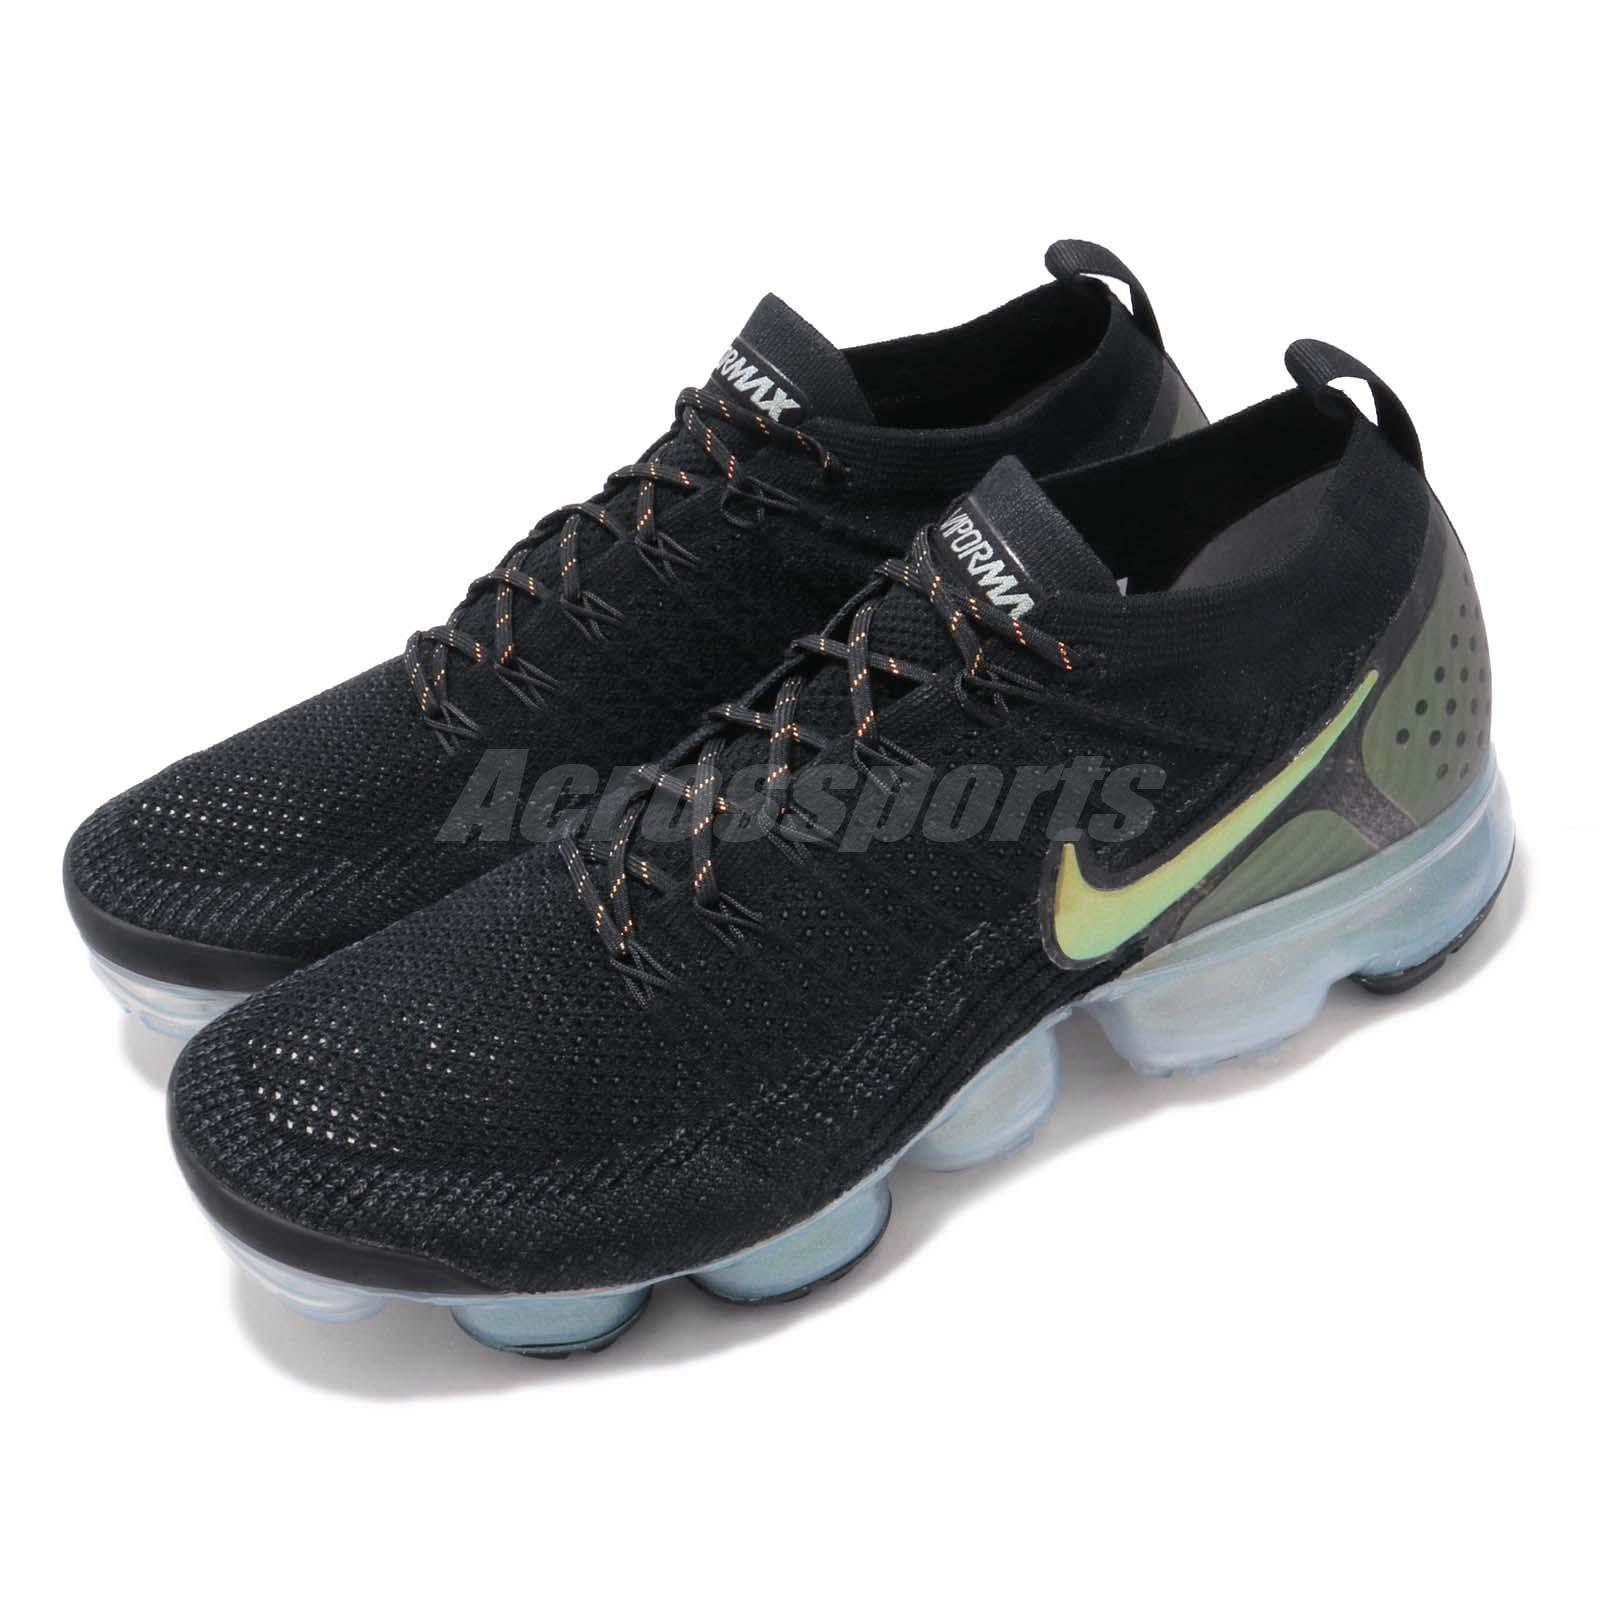 half off 47ea1 d81c8 Details about Nike Air Vapormax Flyknit 2 Black Gold Men Running Shoes  Sneakers 942842-015